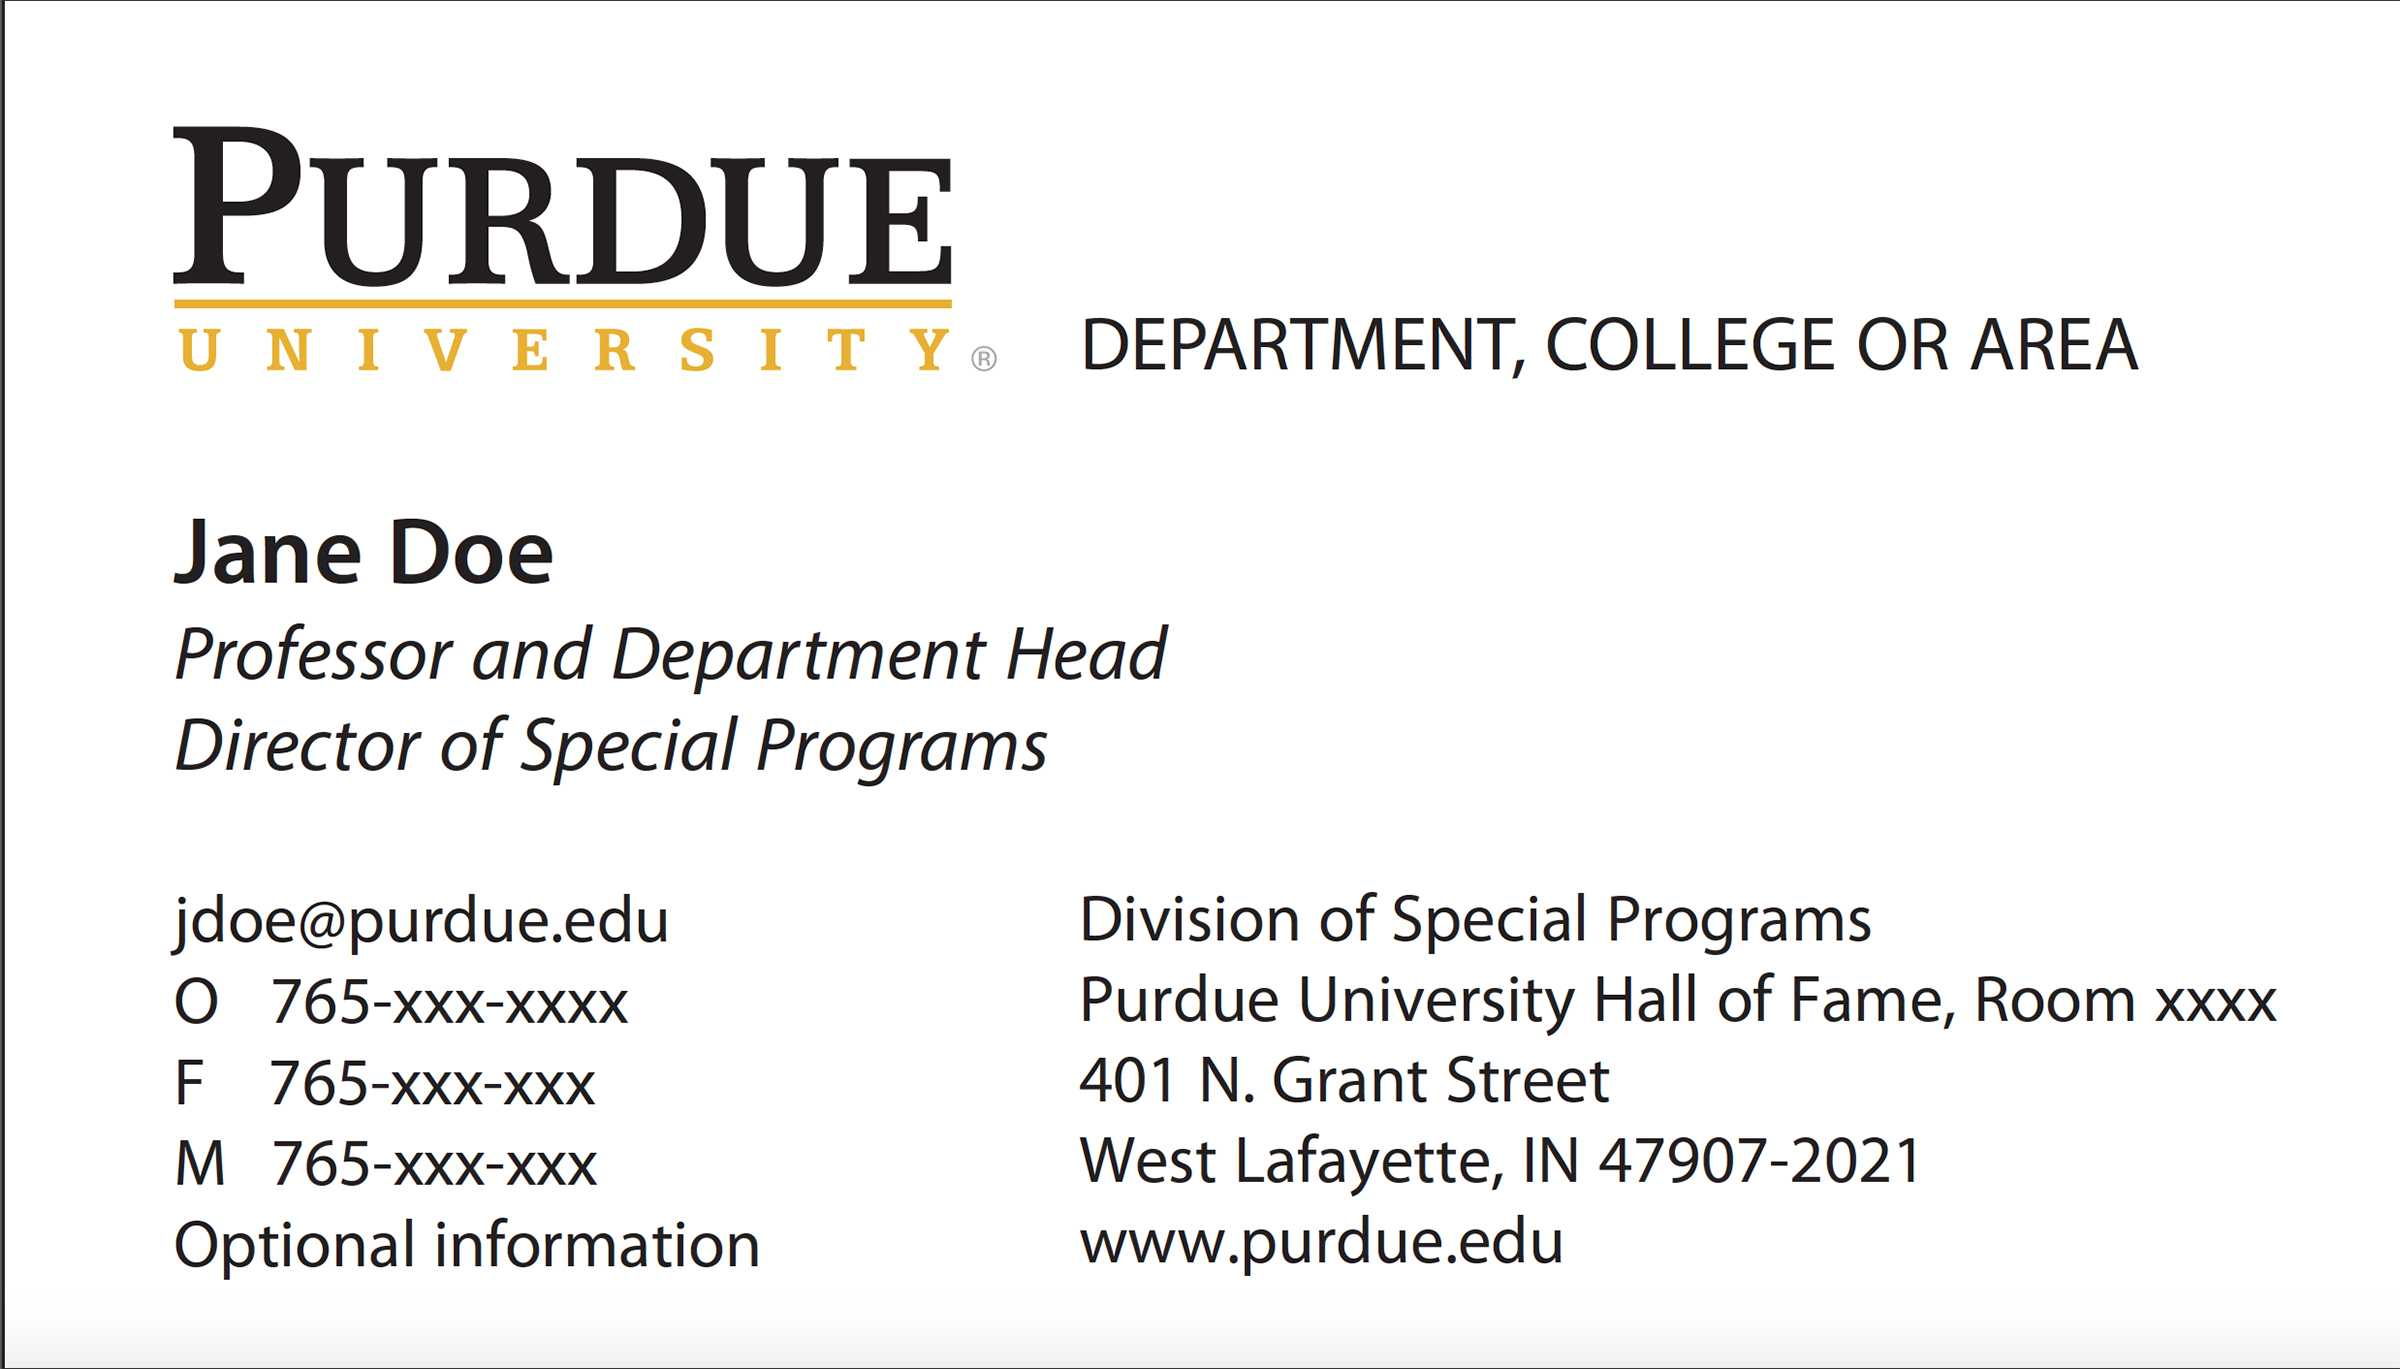 New Business Card Template Now Online - Purdue University News Within Graduate Student Business Cards Template